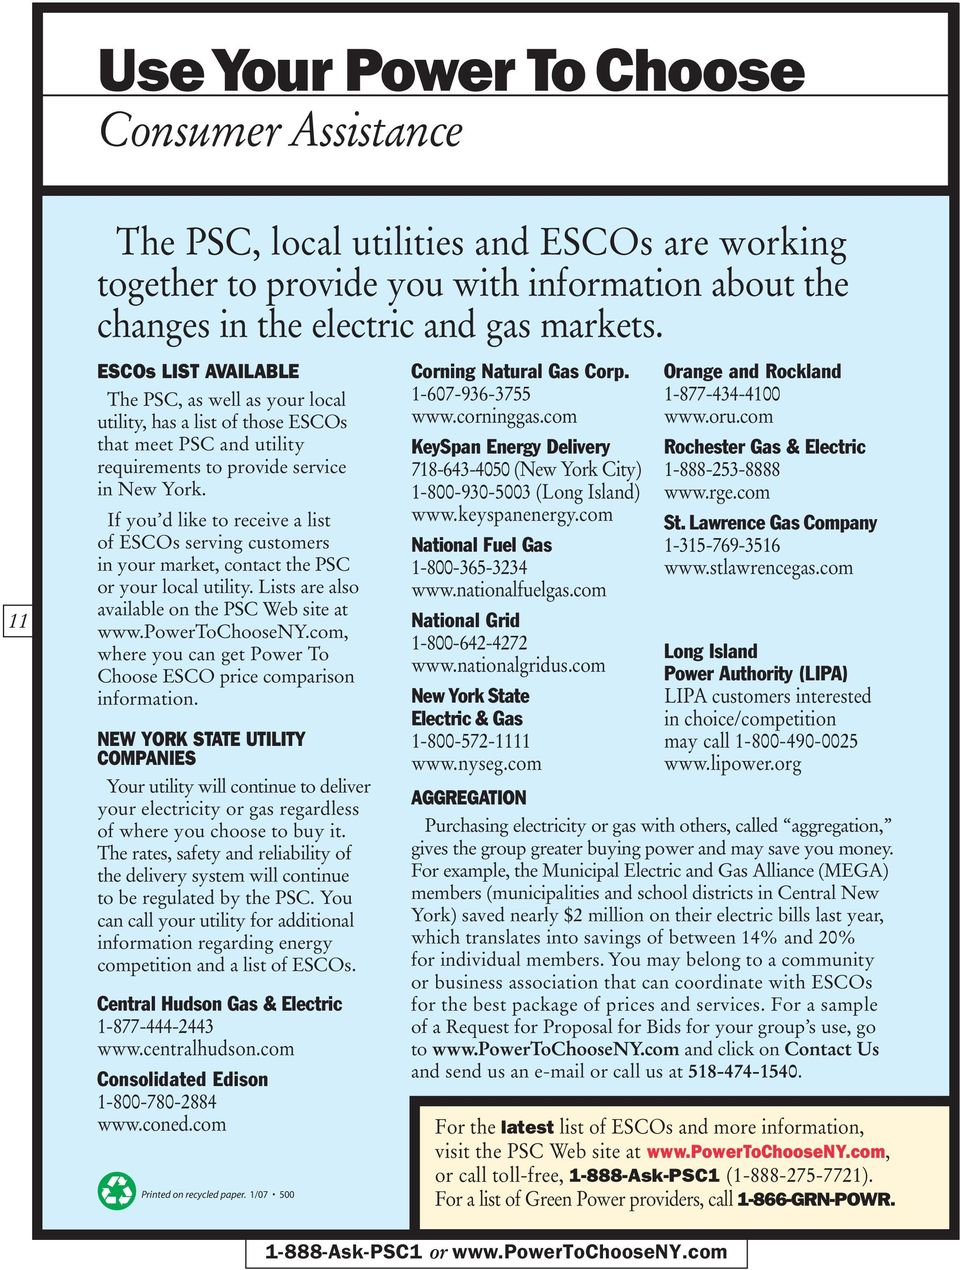 If you d like to receive a list of ESCOs serving customers in your market, contact the PSC or your local utility. Lists are also available on the PSC Web site at www.powertochooseny.